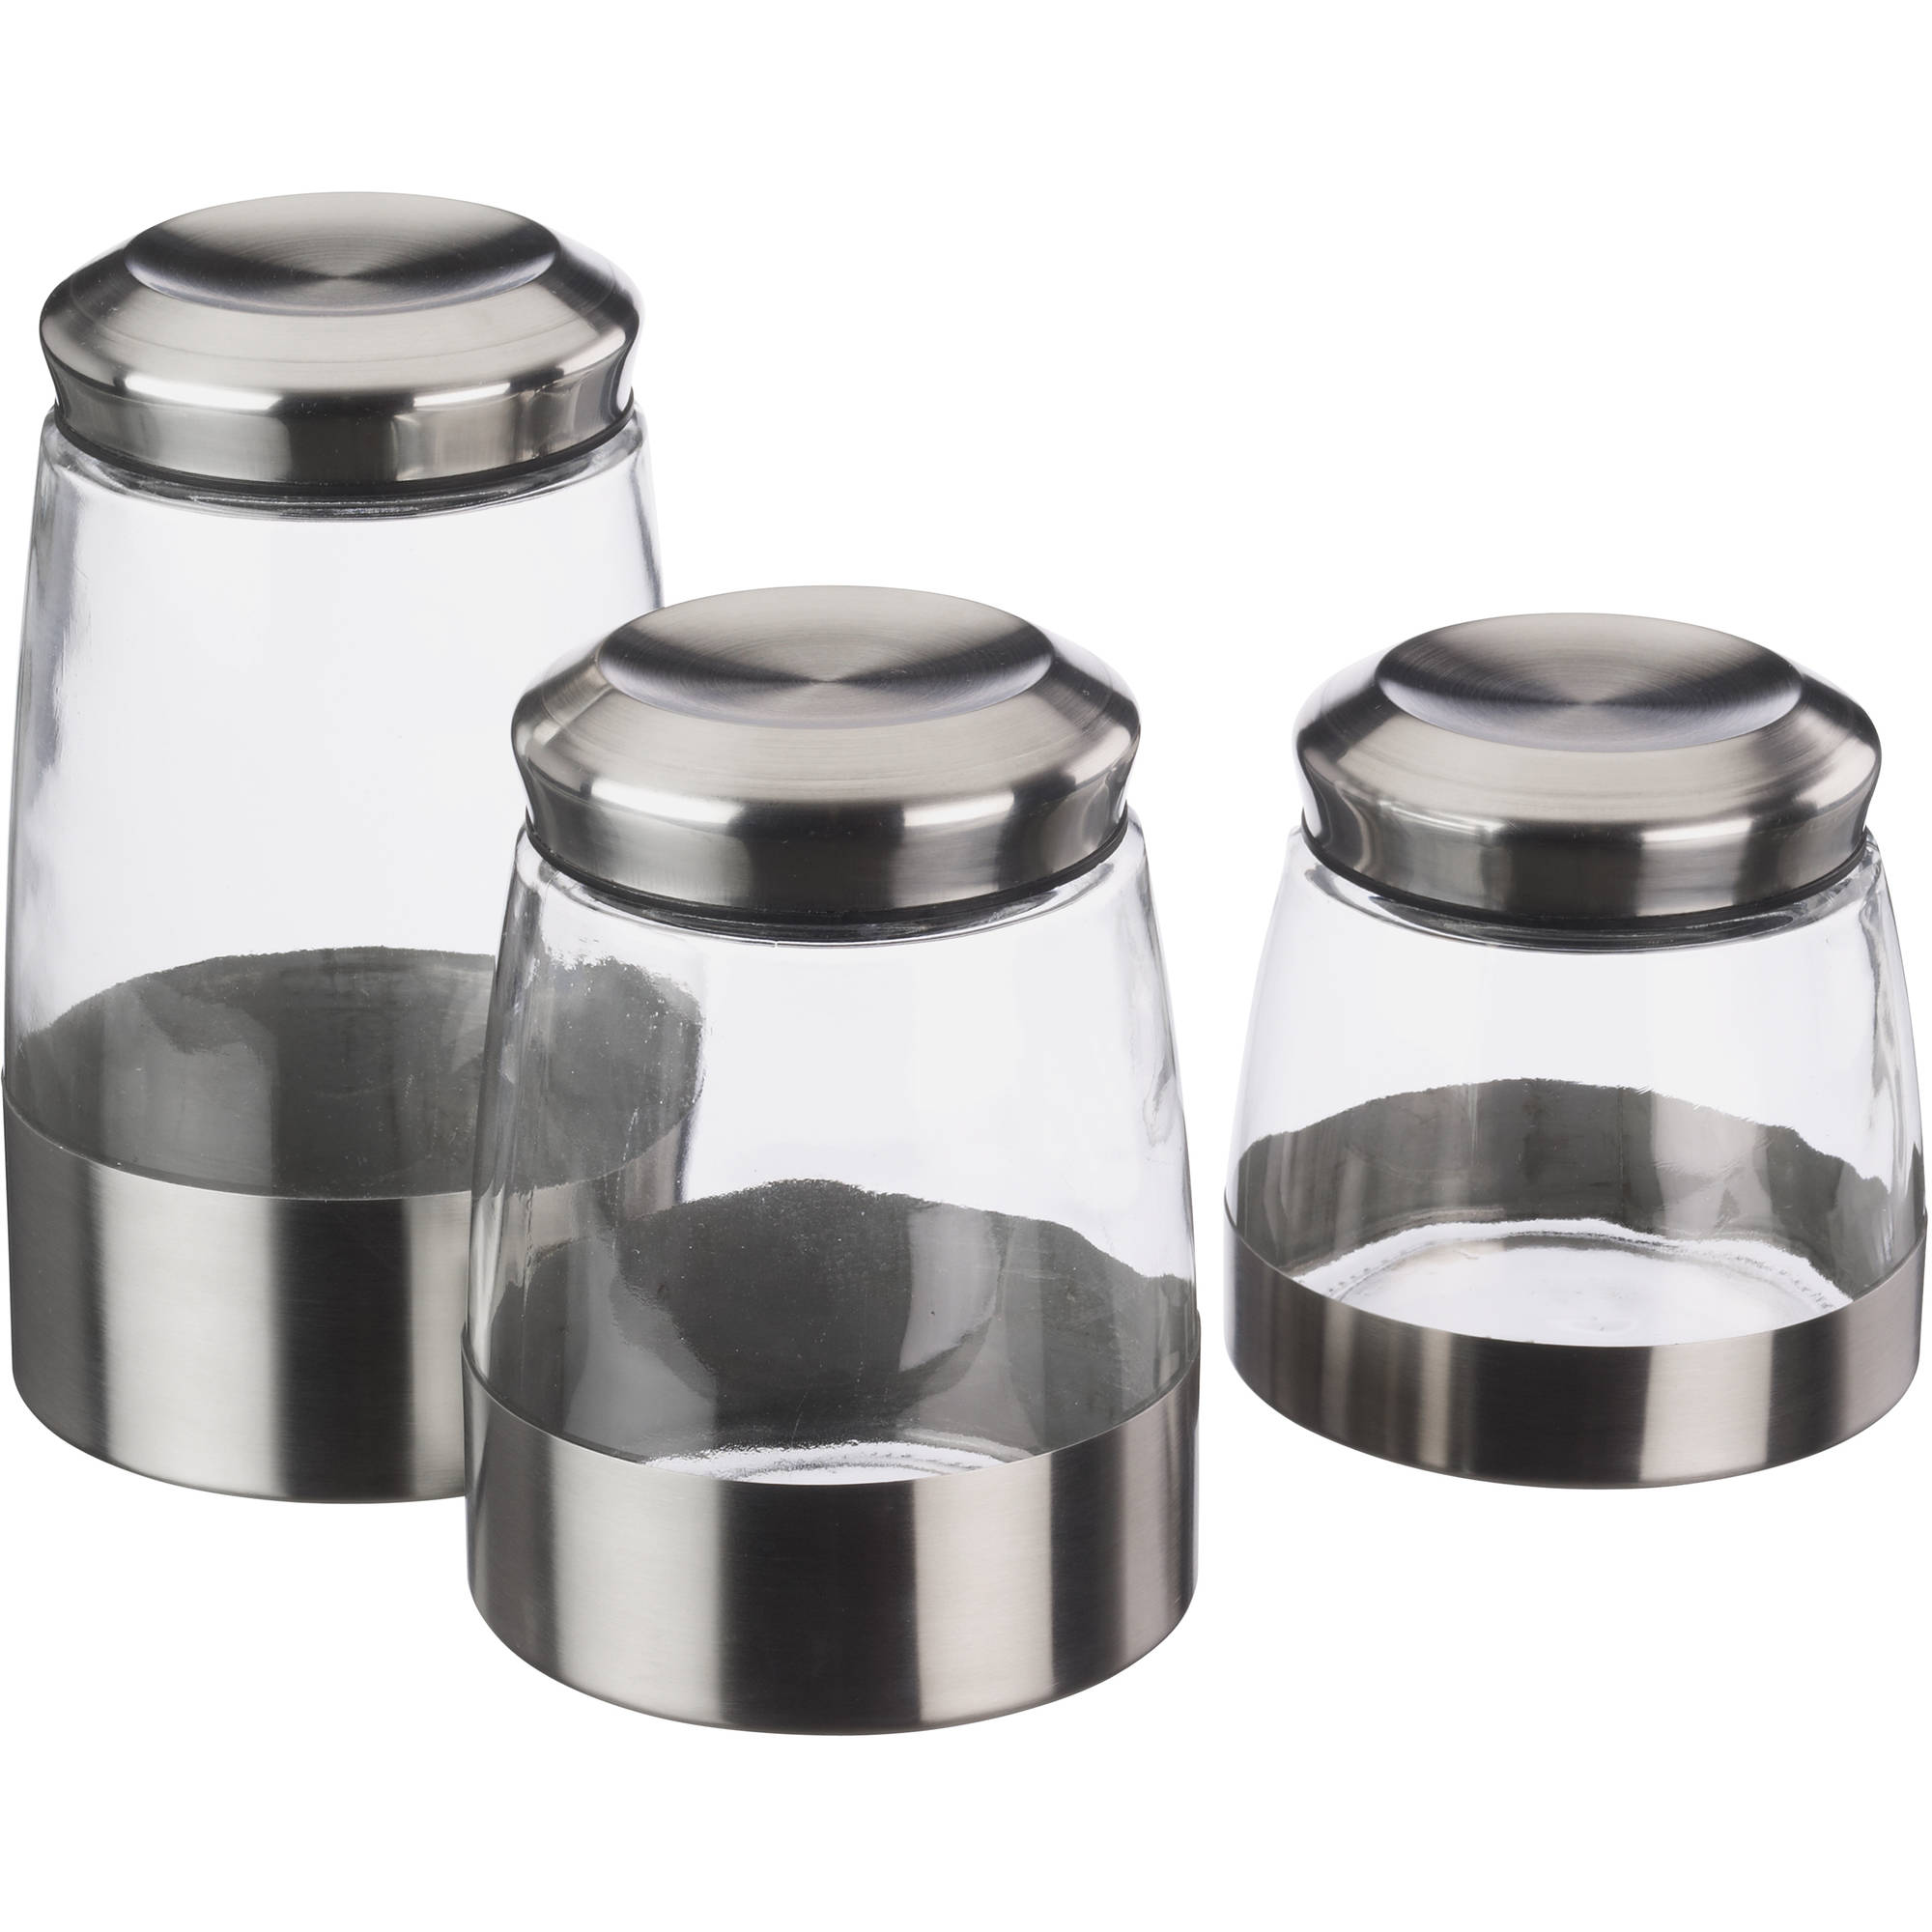 Mainstays 3-Piece Glass Canister Set